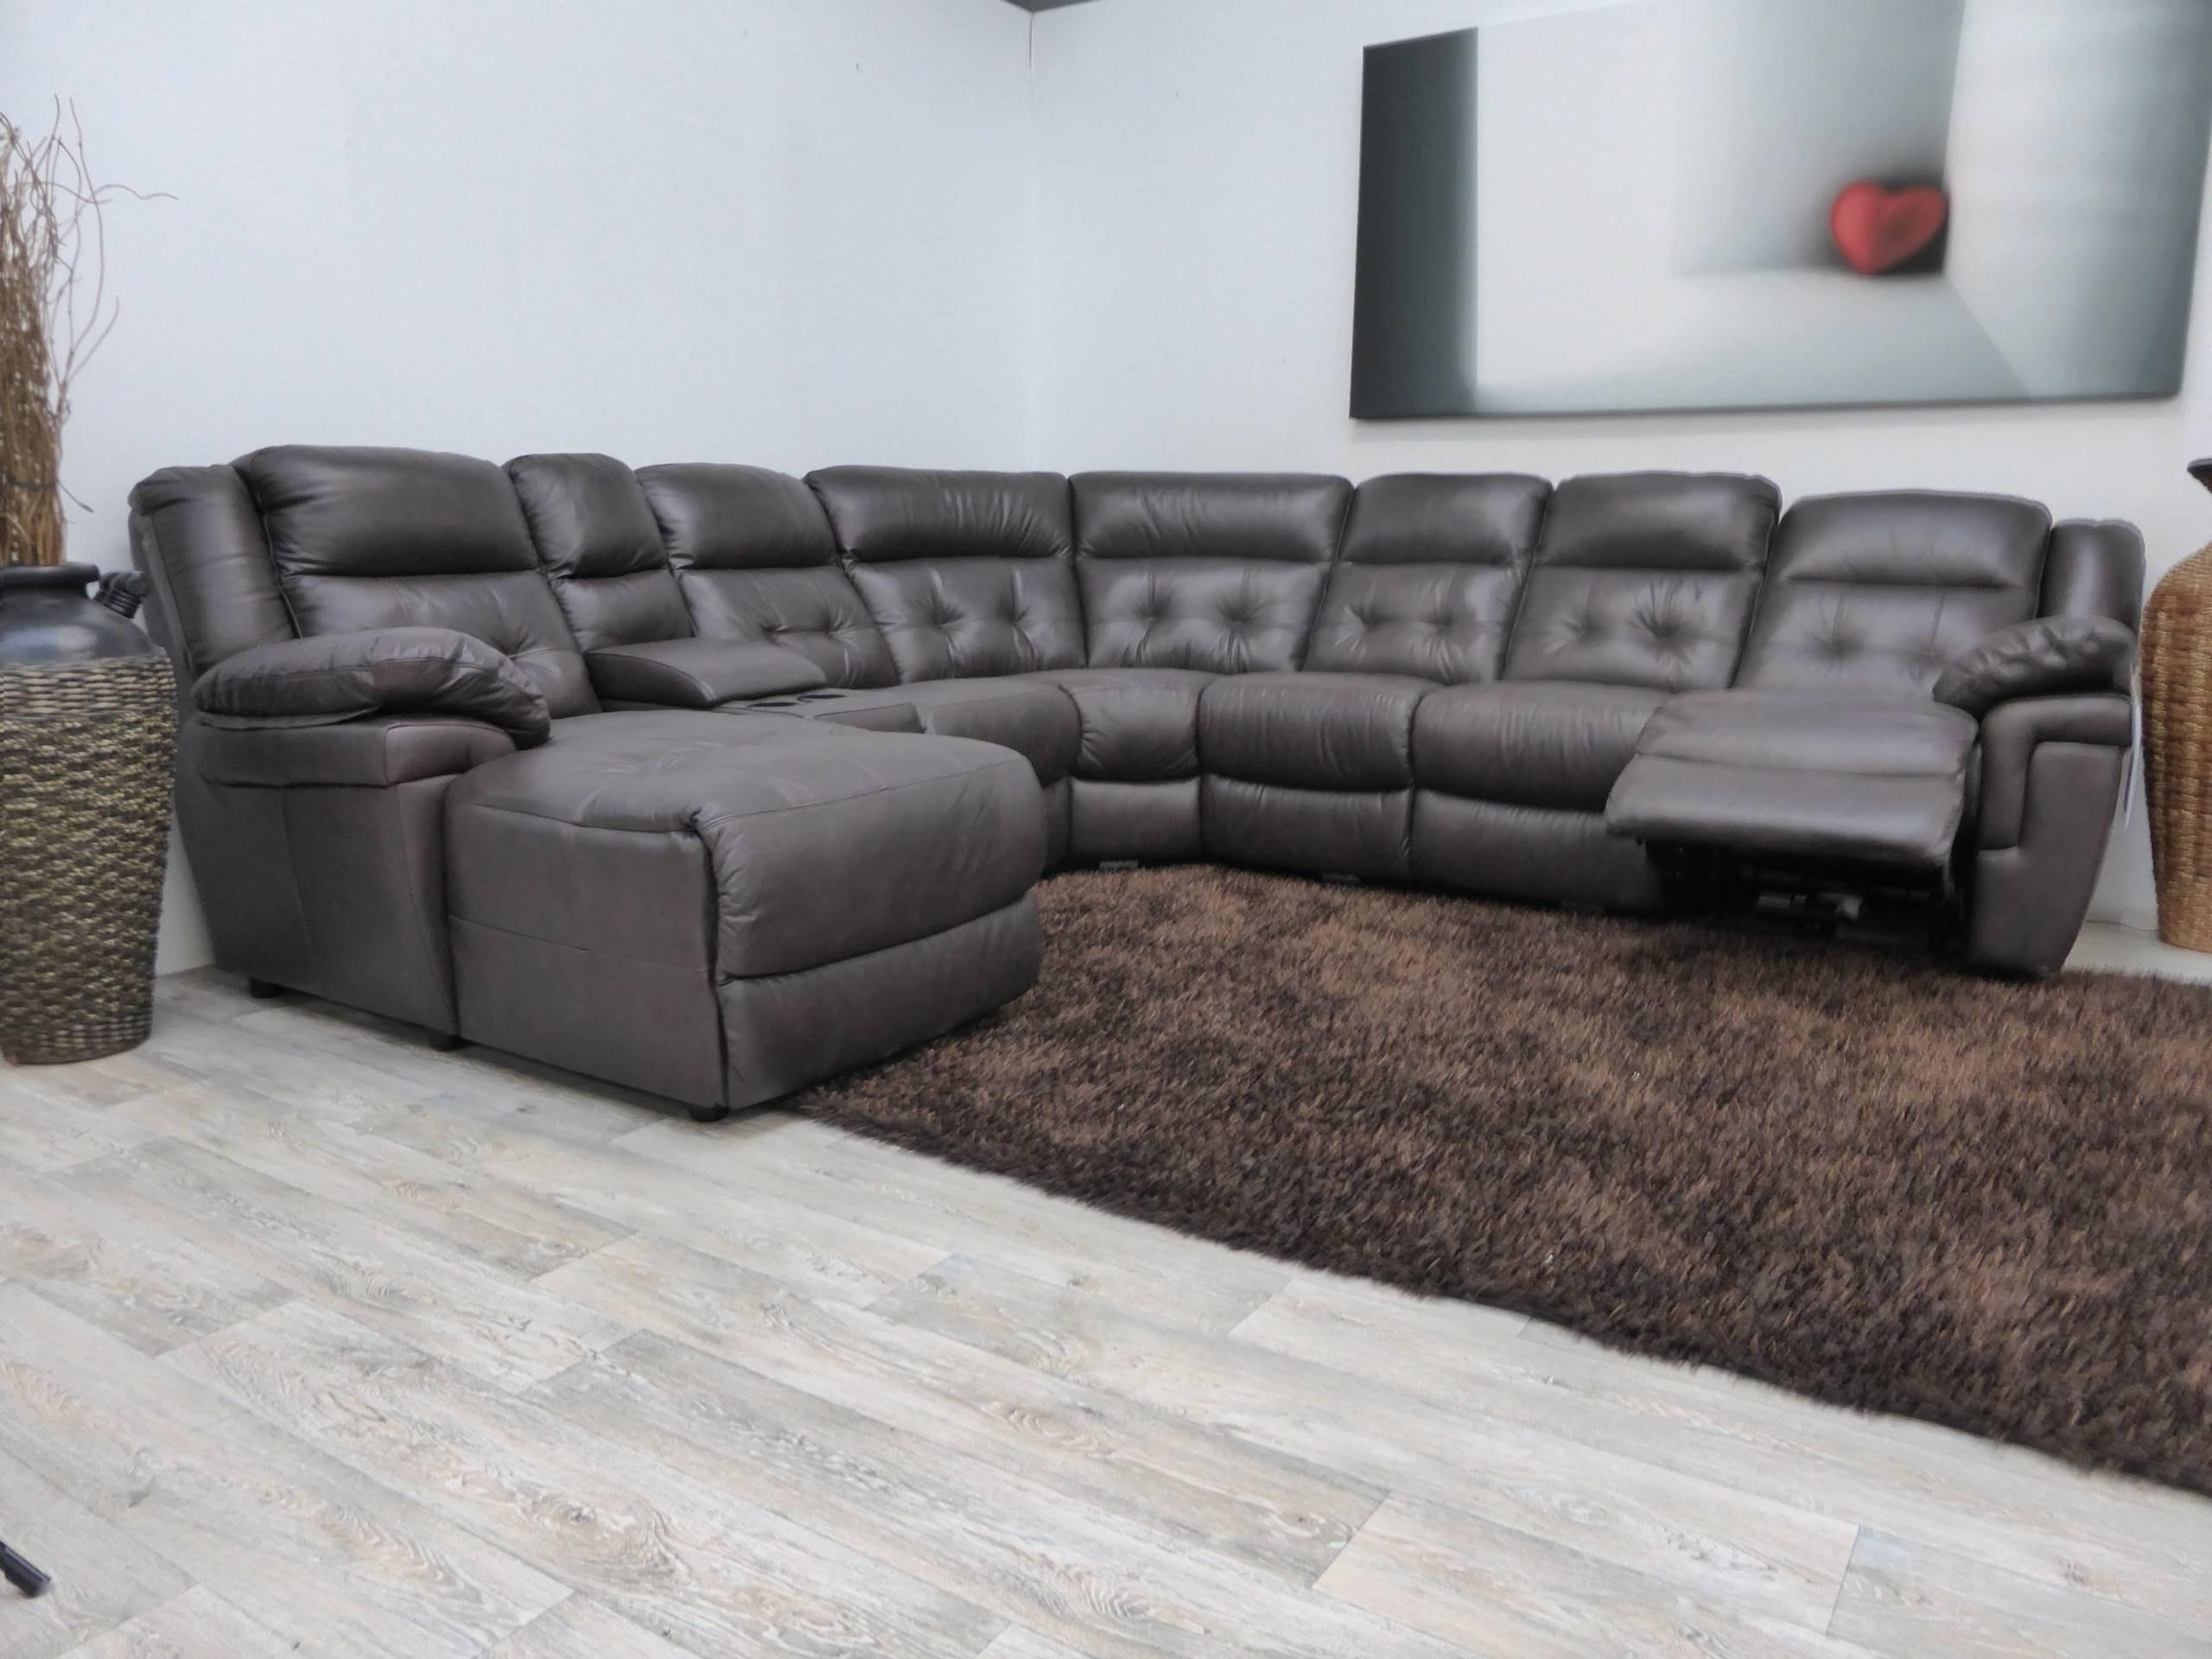 Gilbert Az Sectional Sofas Within Recent Furniture : Craigslist Ma Furnitureowner Luxury Sectional Sofa (View 8 of 20)